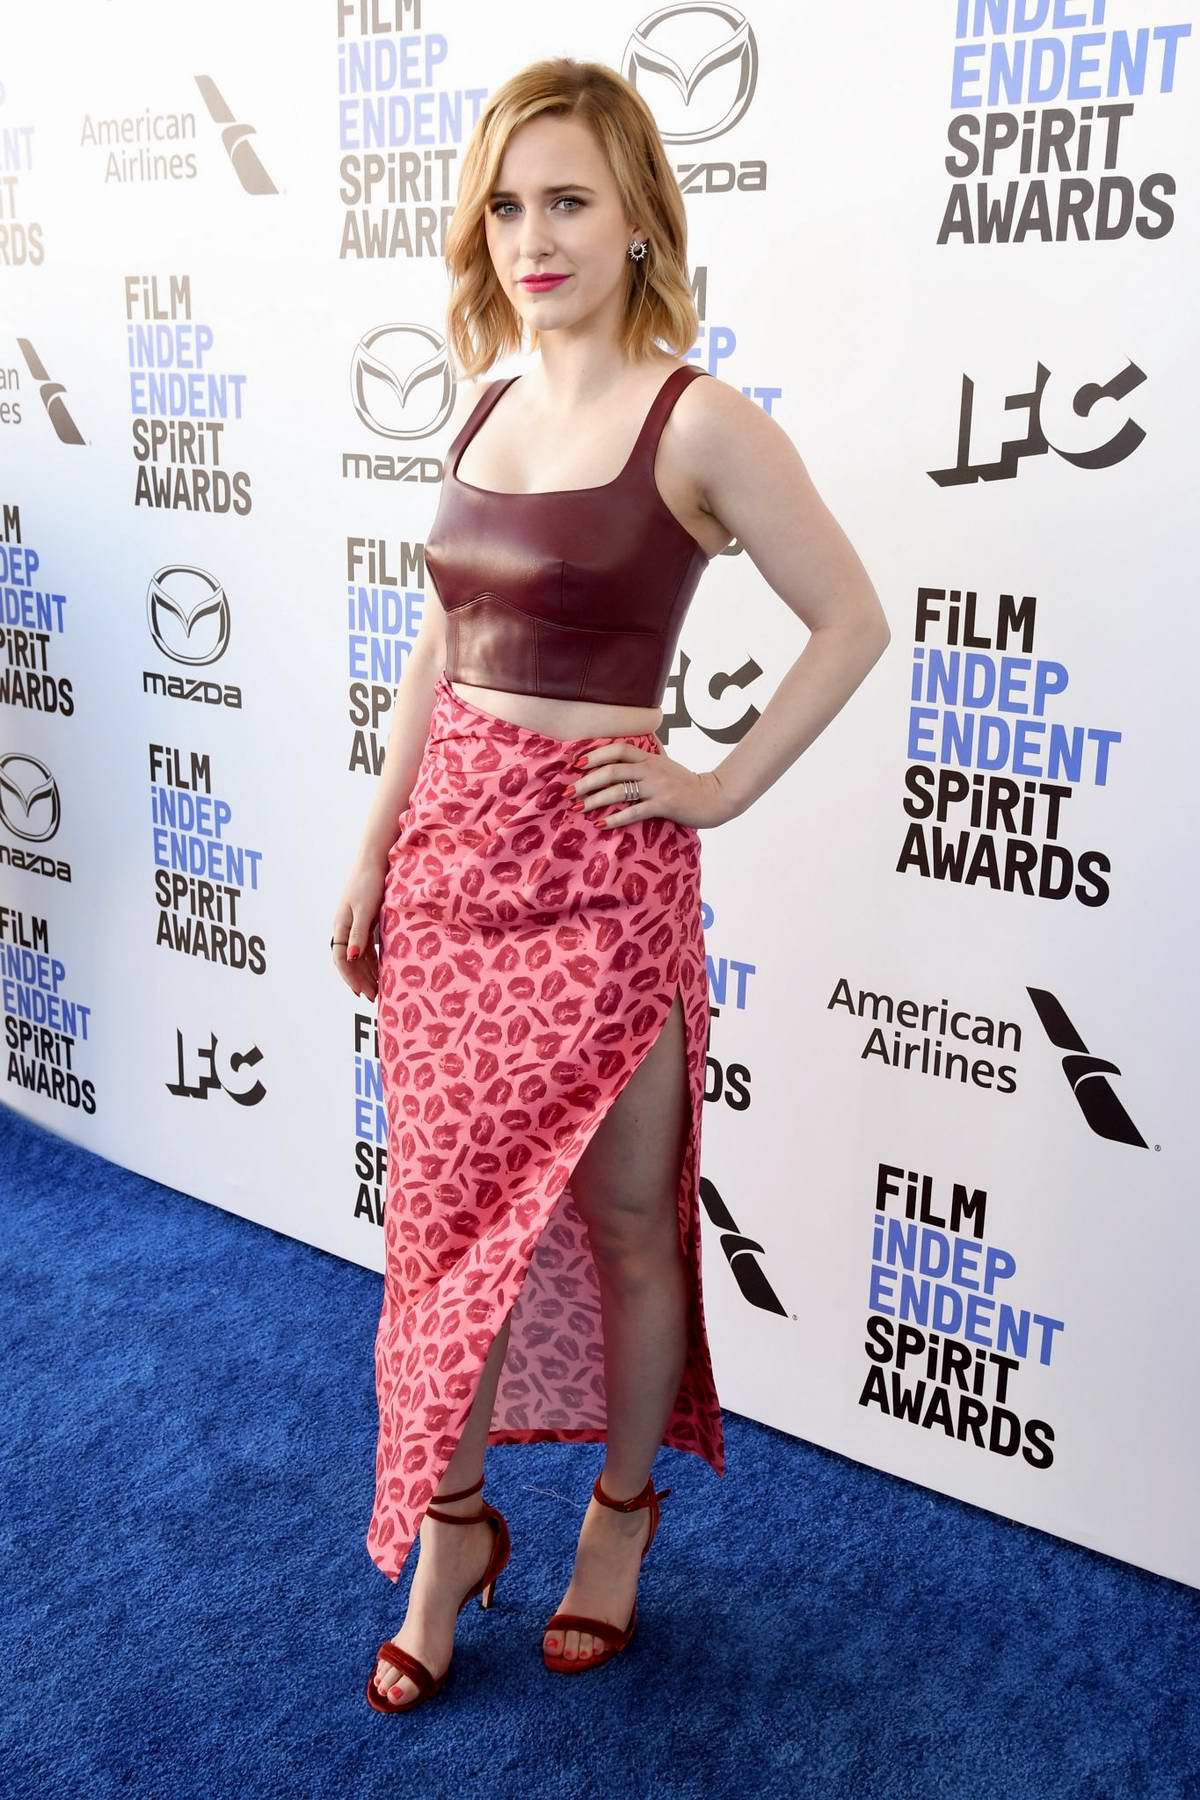 Rachel Brosnahan attends the 2020 Film Independent Spirit Awards at The Barker Hangar in Santa Monica, California